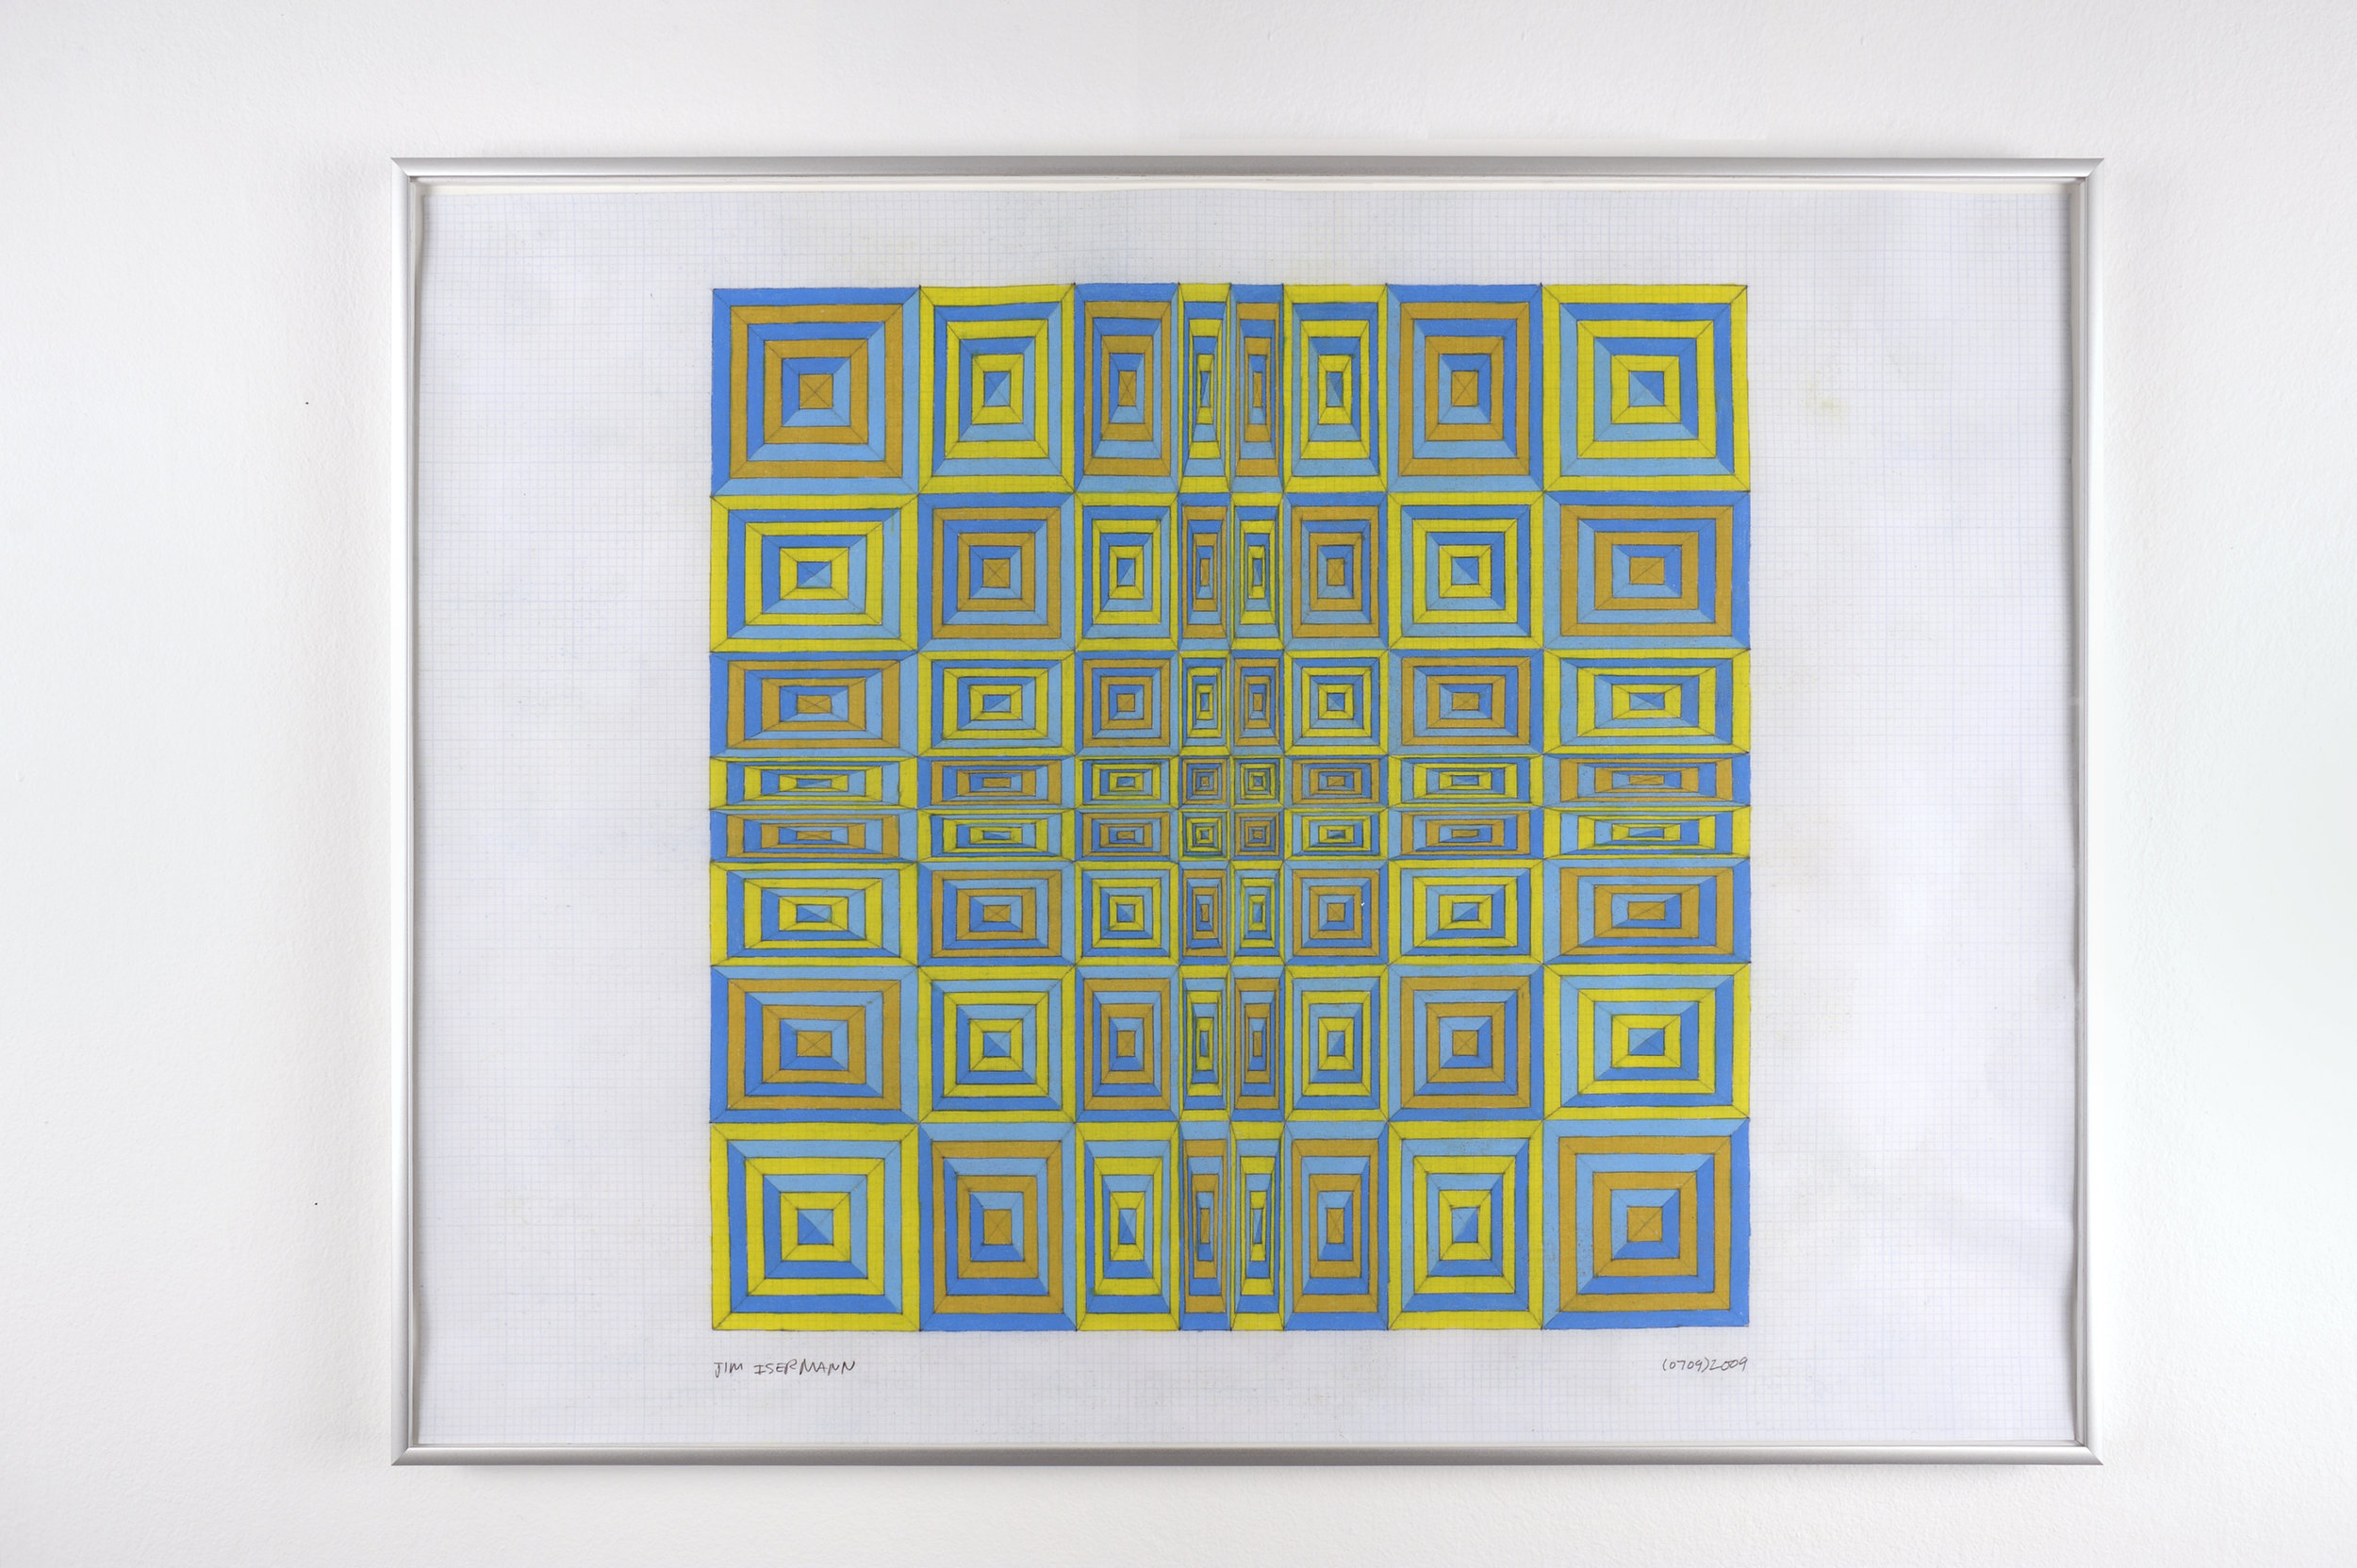 Untitled (0709), 2009 colored pencil on grid paper 47,5 x 62,7 cm - 18 3/4 x 24 5/8 inches